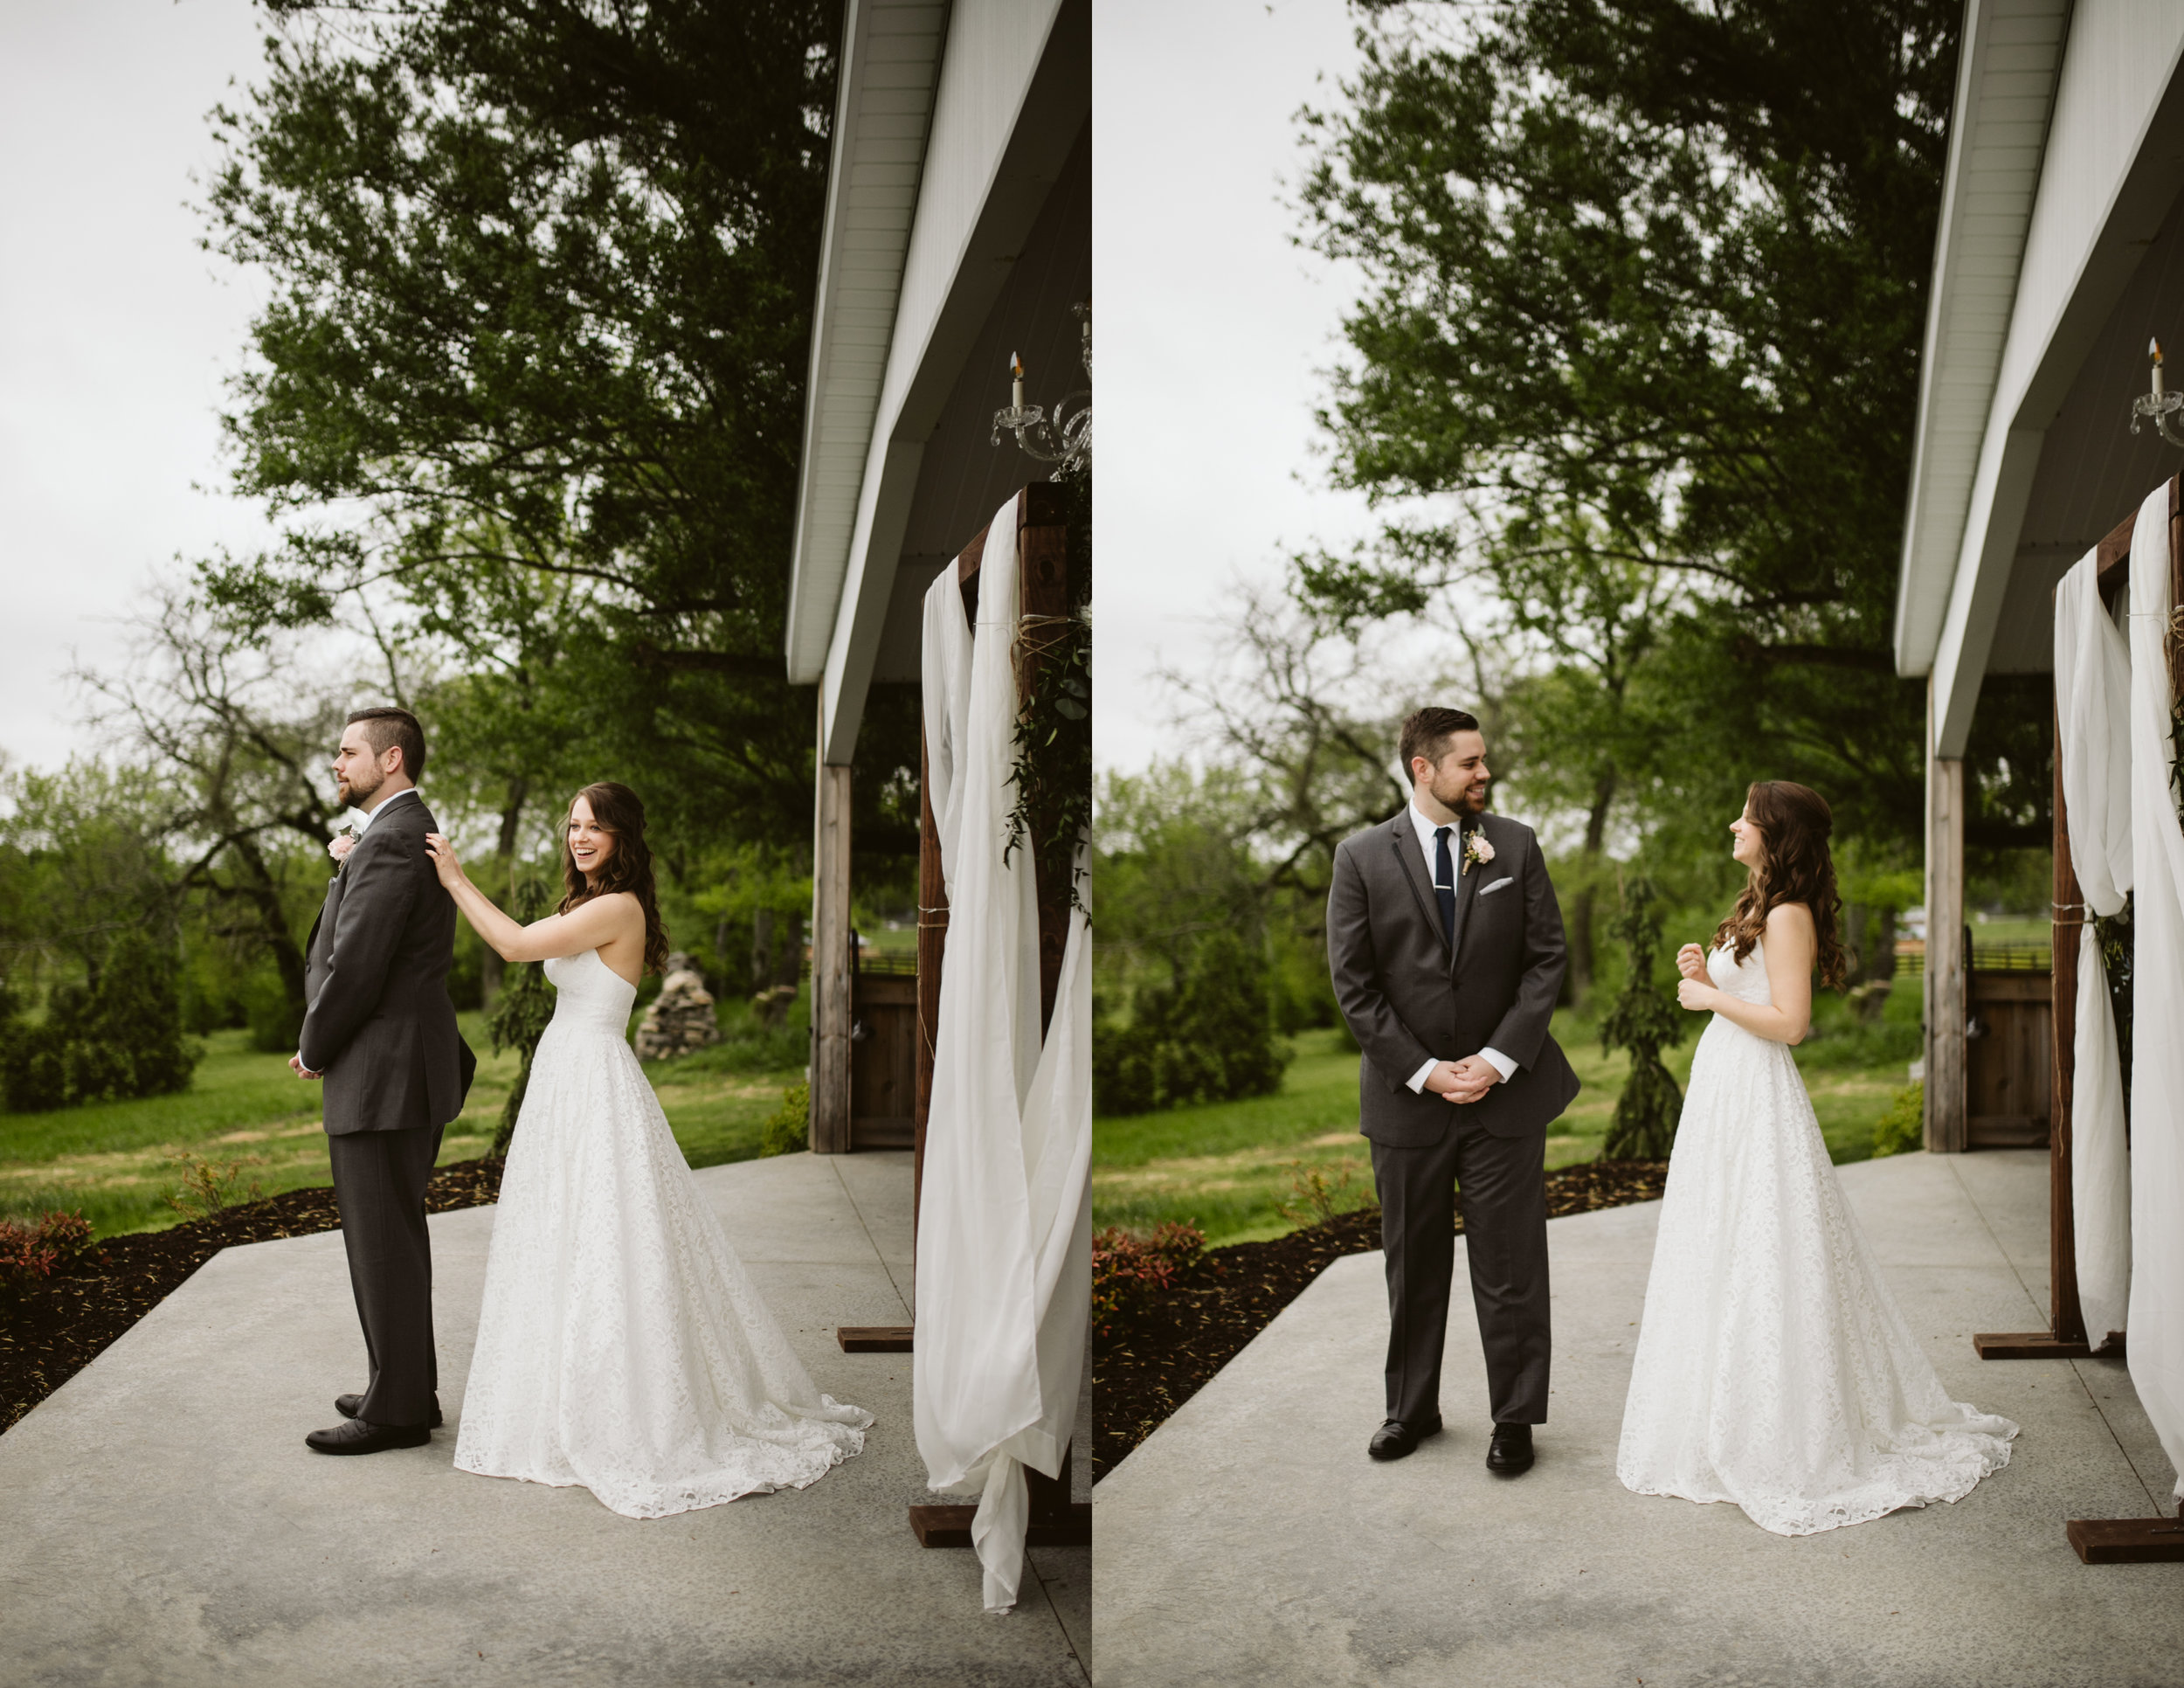 First look at a A Rustic Wedding at Barn in the Bend in Nashville, Tennessee